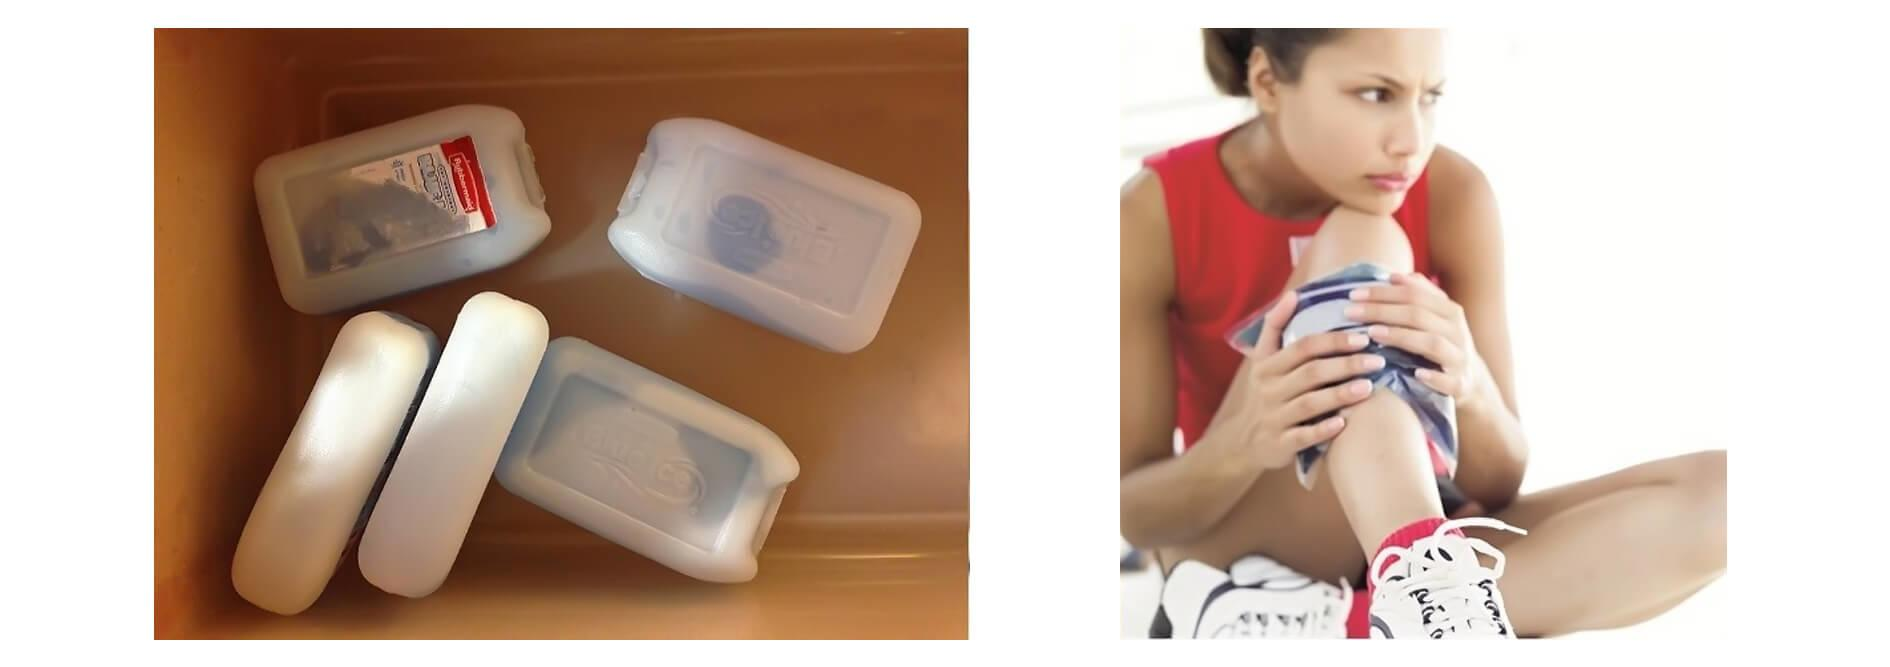 Sports-injury-concept-ice-pack